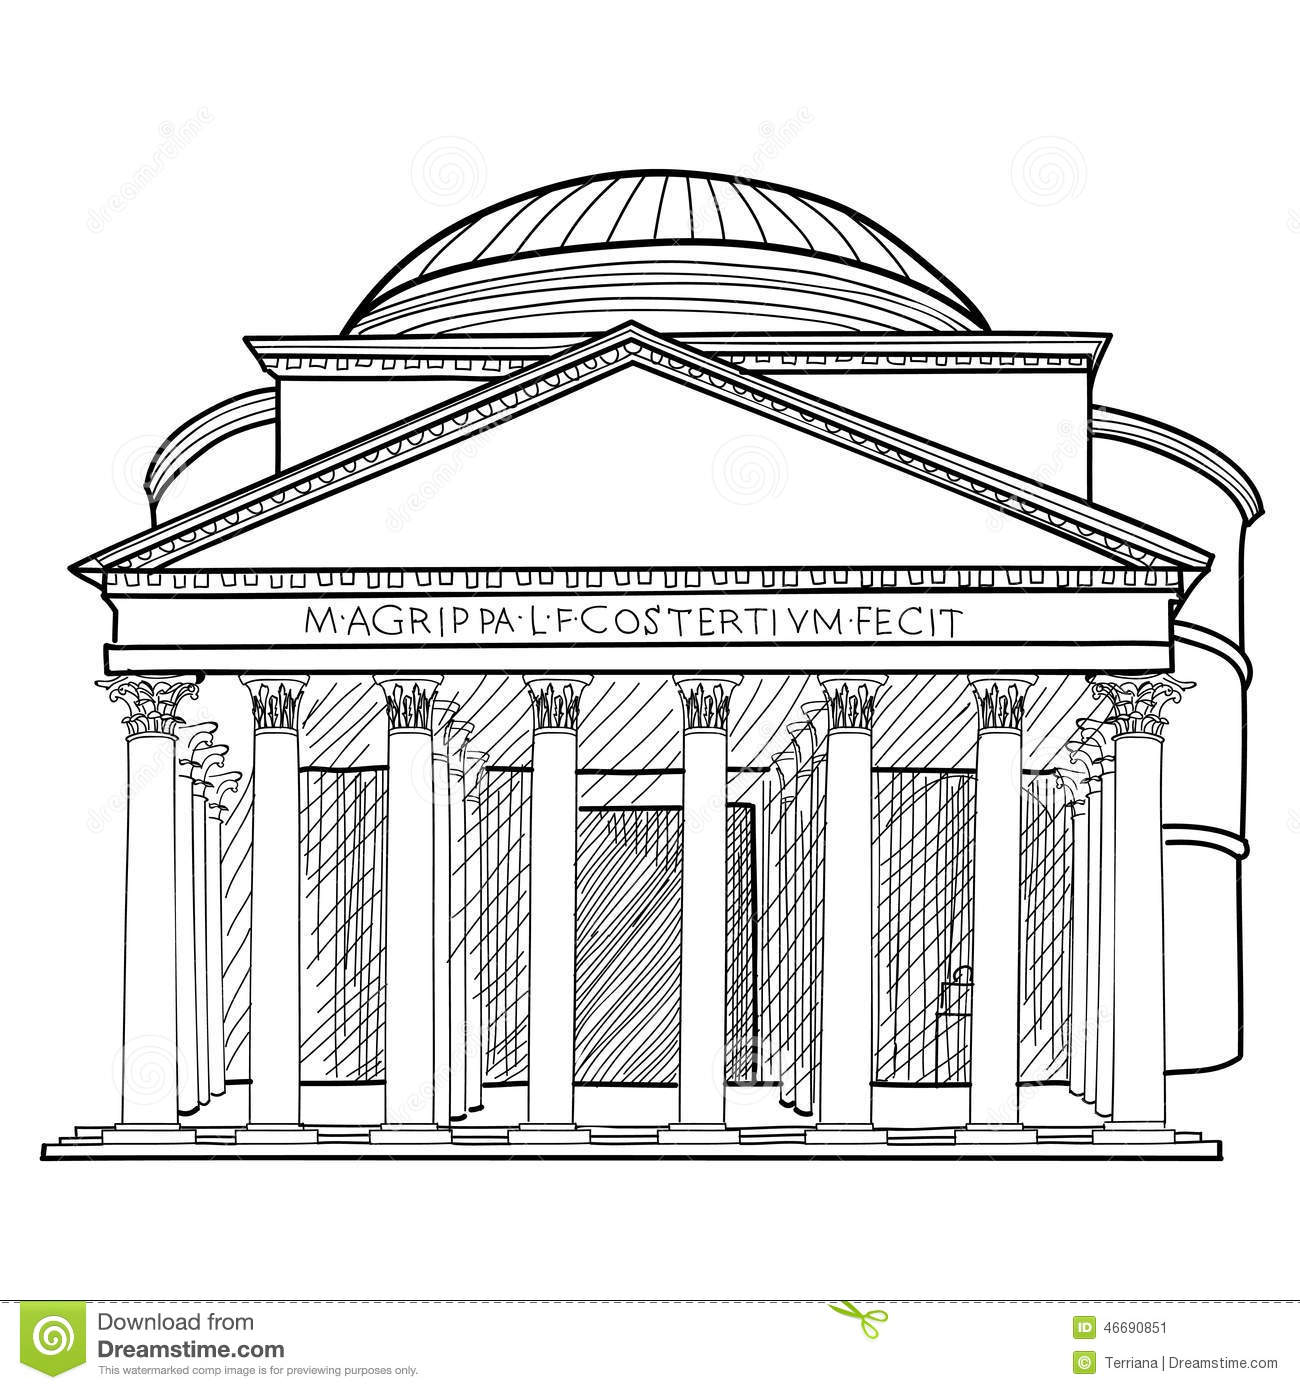 Westerkerk additionally Topic subtopic additionally Stock Illustration Rome Famous Building Italian Landmark Panteon Isolated Sktch Il Illustration Image46690851 in addition Stralsund And Hiddensee furthermore Royalty Free Stock Photo Modern Website Template Editable Vector Format Image36250285. on center of a square symbol